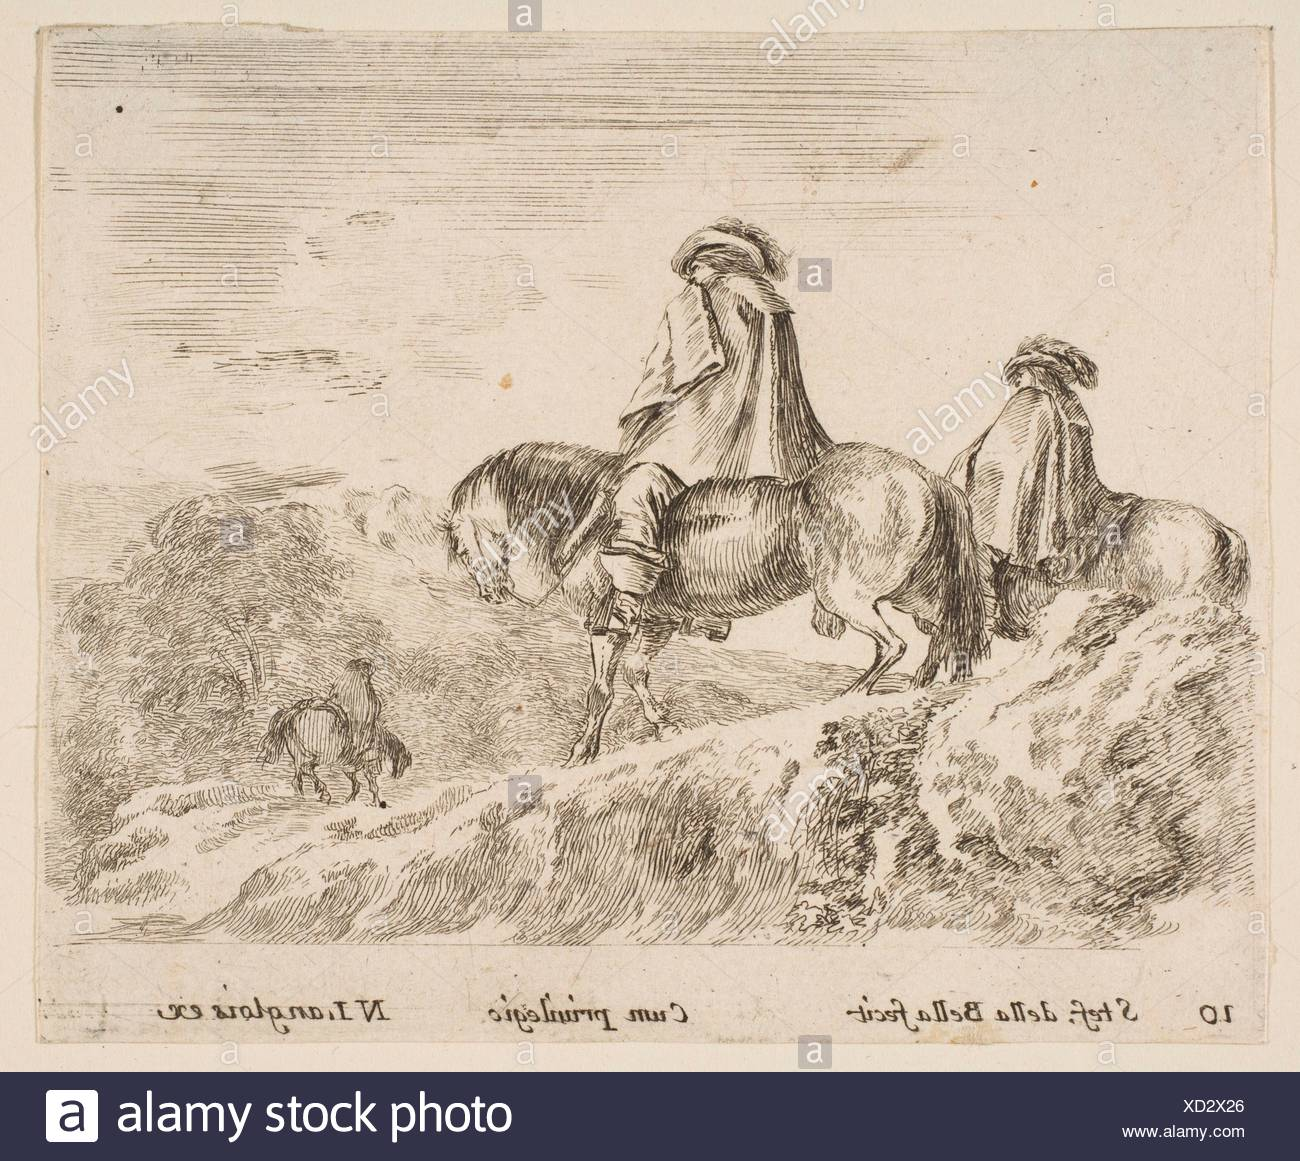 Plate 10: two horsemen descending a mountain at left, another horseman to right in background, from 'Diversi capricci'. Series/Portfolio: 'Diversi - Stock Image